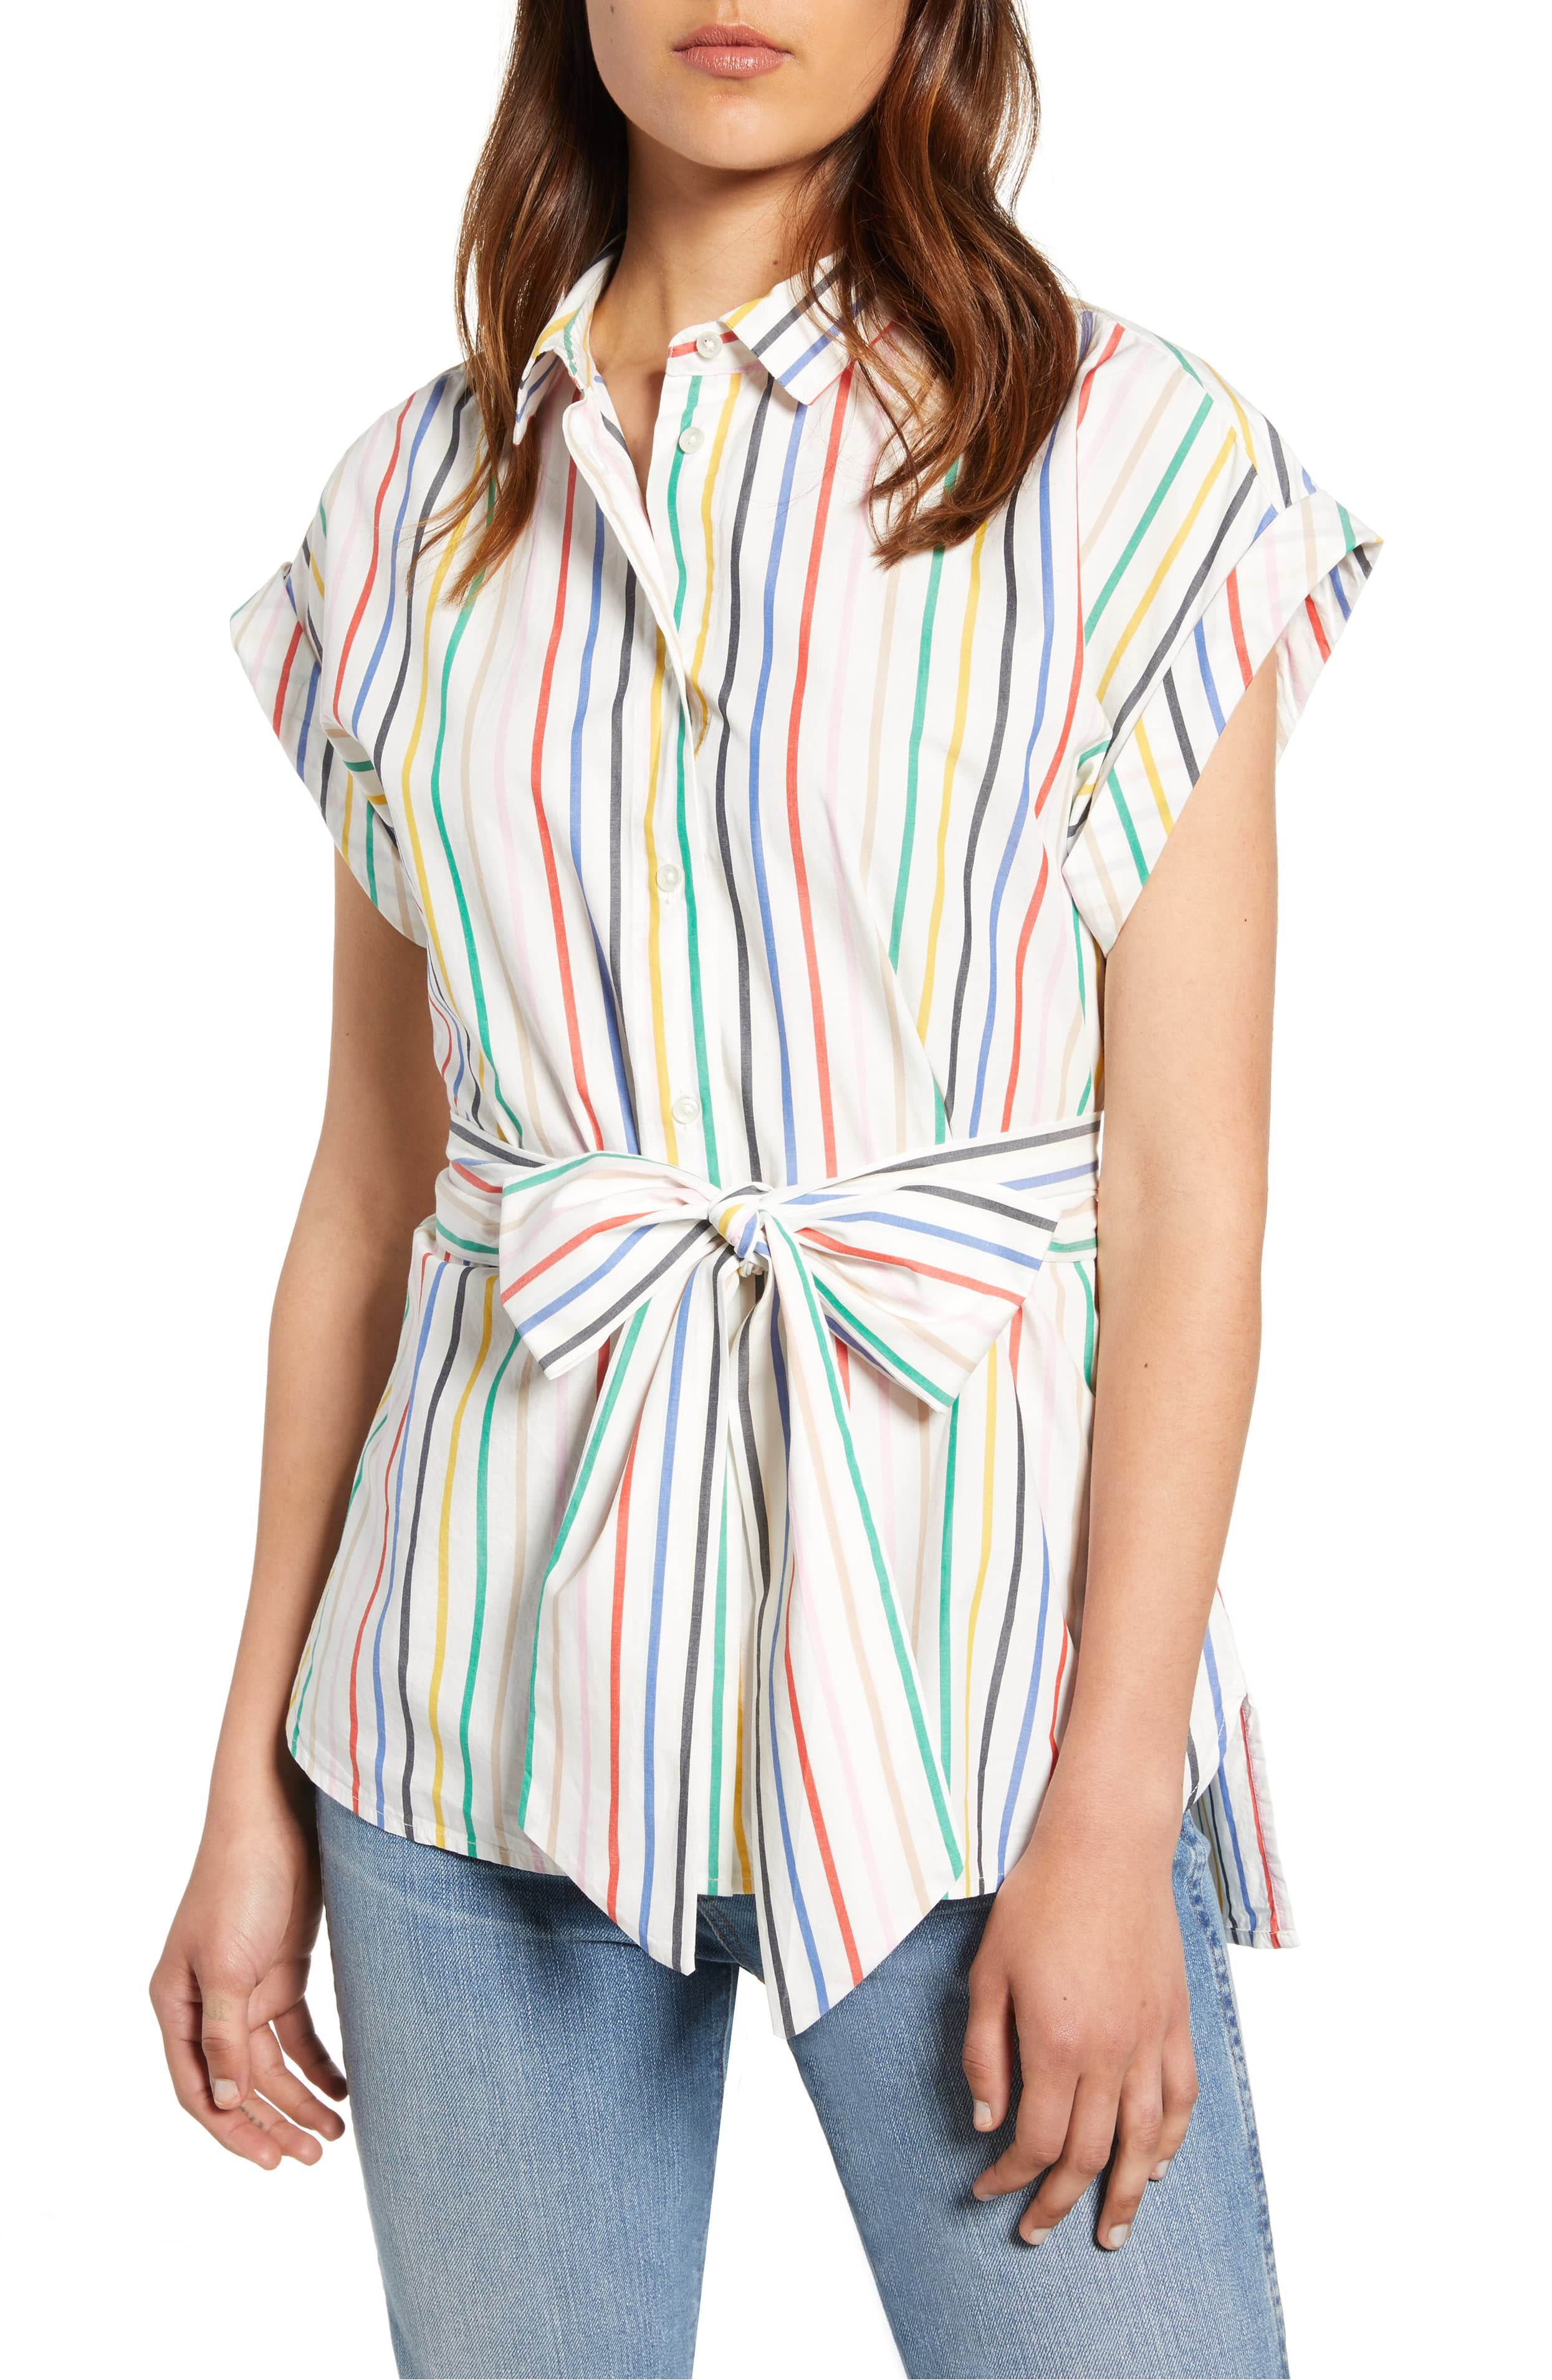 <p>This short-sleeve top (with a flattering tie waist) is an everywhere-and-anything staple. LOVE it. Price $75 (Image: Nordstrom){&nbsp;}</p><p></p>